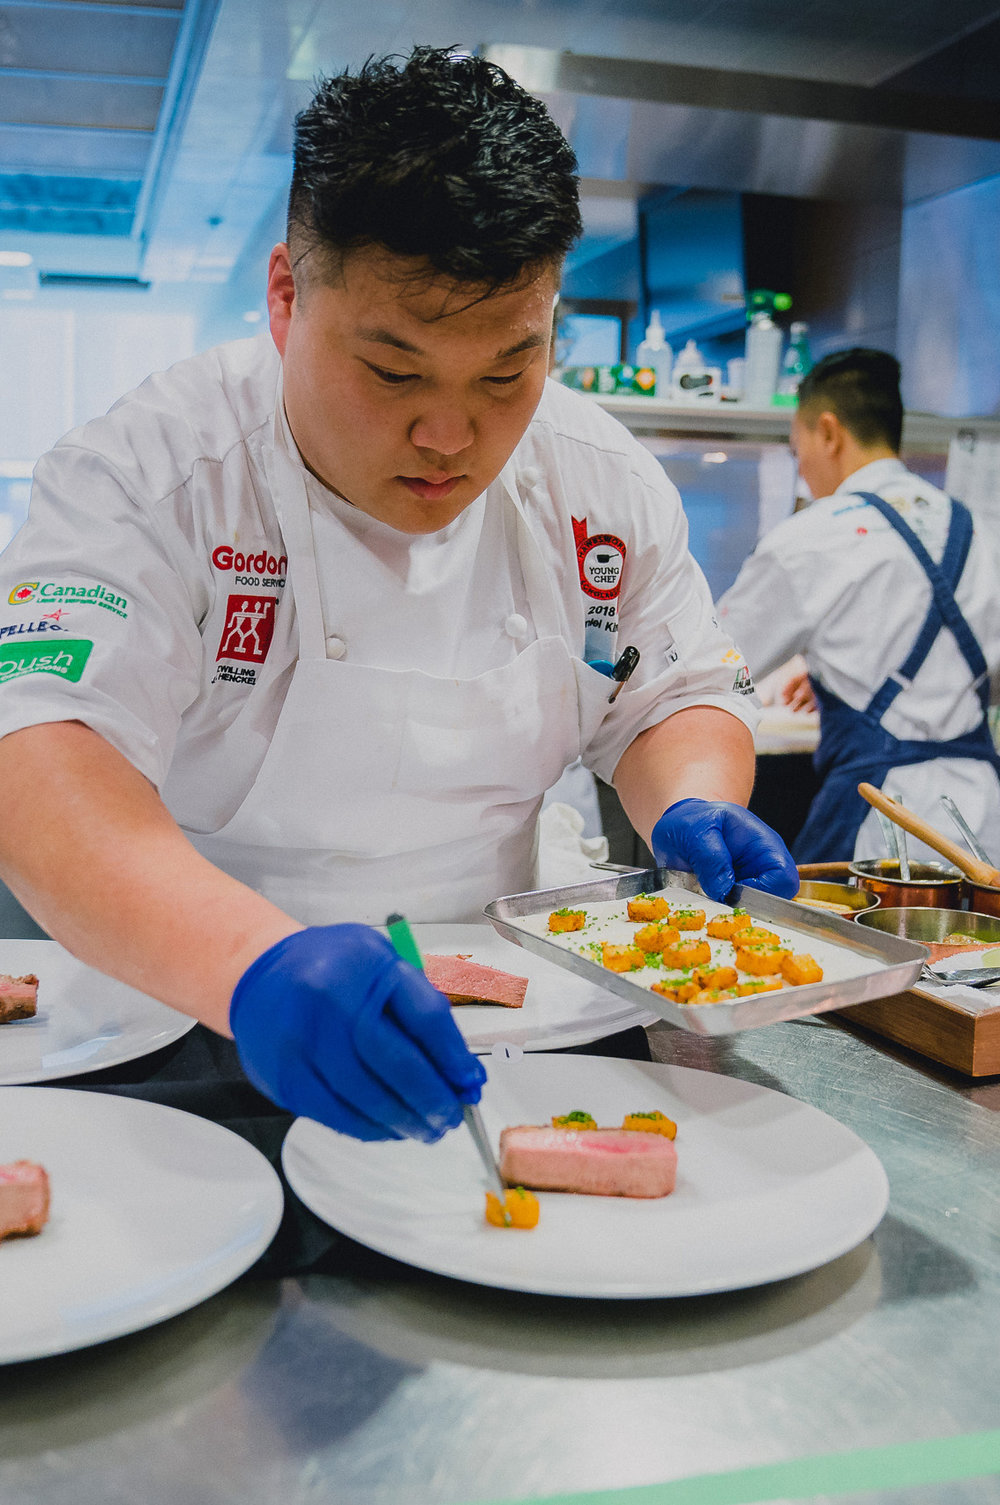 BOULEVARD KITCHEN'S DANIEL KIM WINS 2018 HAWKSWORTH YOUNG CHEF SCHOLARSHIP NATIONAL FINALS - October 15, 2018For the second year in a row, a key member of the Boulevard Kitchen & Oyster Bar back-of-house team won the Hawksworth Young Chef Scholarship finals in Toronto as Junior Sous Chef Daniel Kim reigned supreme at the annual culinary competition this past weekend.The national competition involved a black-box challenge during which the eight finalists had three hours to incorporate such mystery ingredients as Fraser Valley Specialty Poultry duck, guanciale sorrentino, butternut squash, local honey, Canadian eggs and Cacao Barry Origin Saint-Domingue 70% Dark Chocolate into a main dish and dessert course. An all-star culinary panel of 13 top chefs and critics including David Hawksworth, Norman Laprise, Lee Cooper, Jacob Richler and Lian Yeung judged the final dishes.